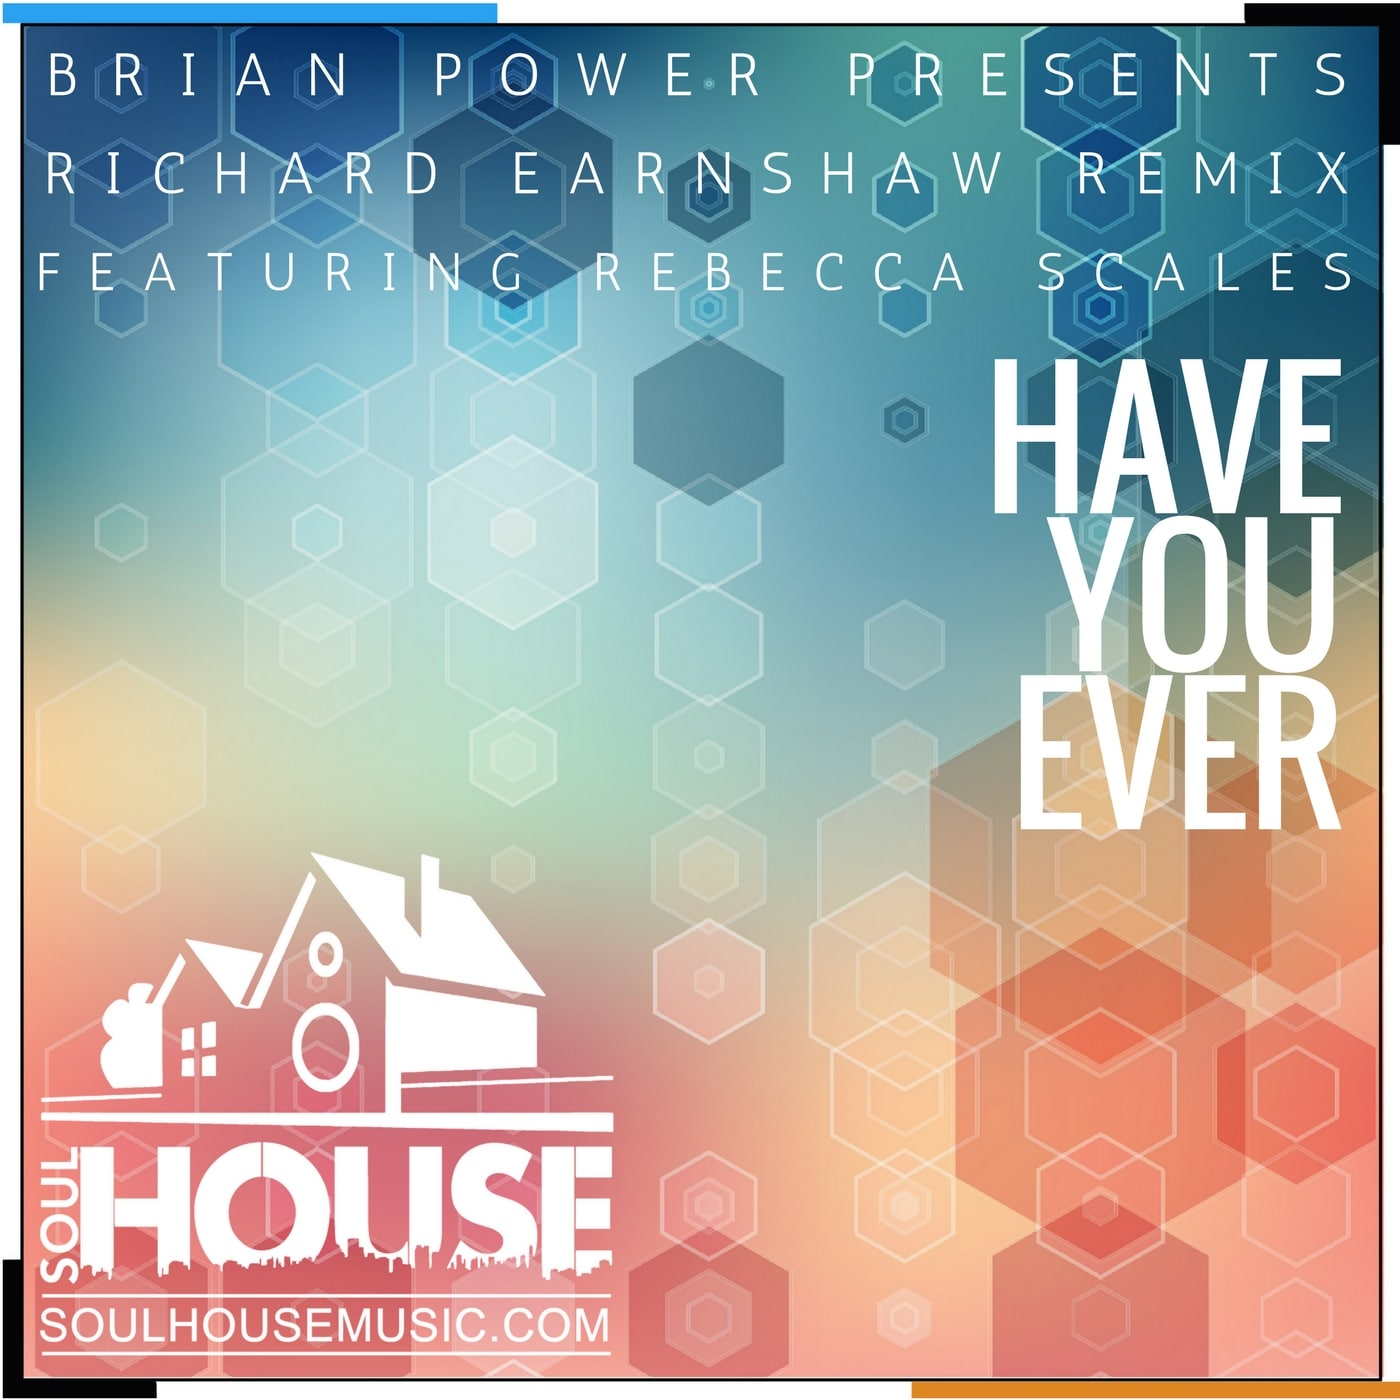 Brian Power Presents Have You Ever (Richard Earnshaw Mixes)